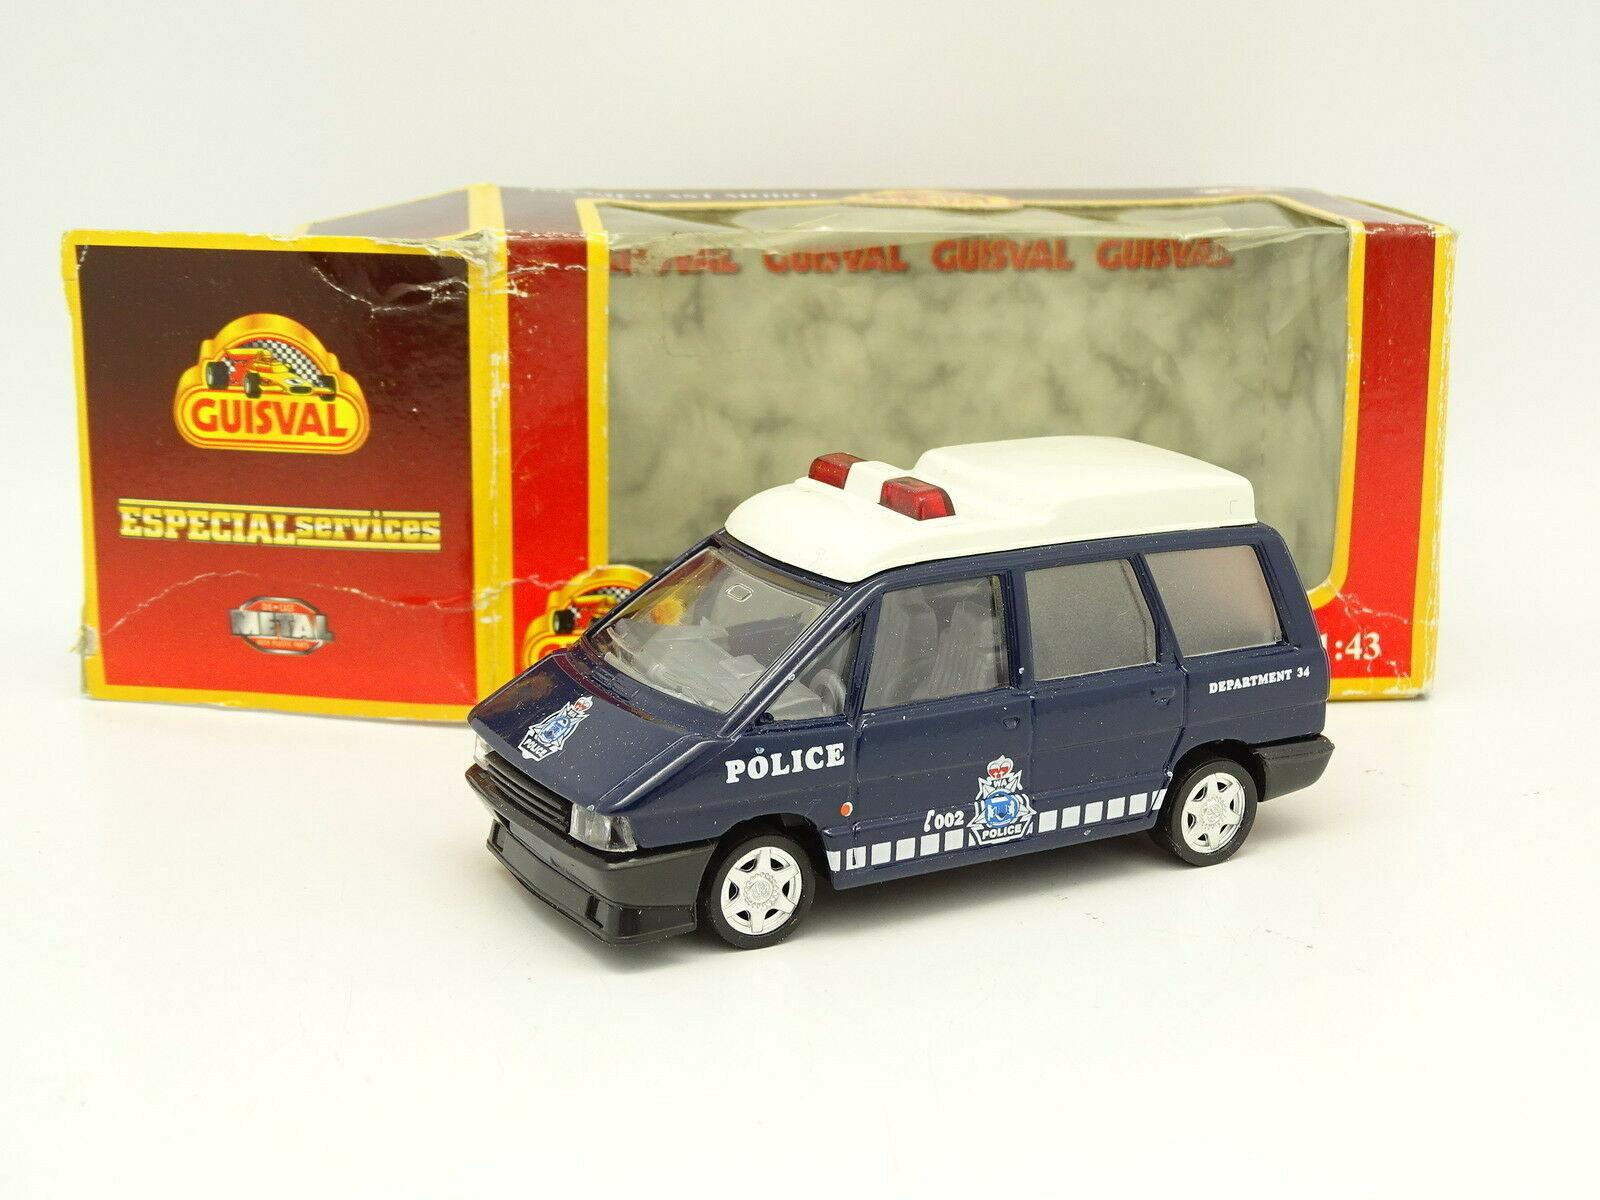 Guival 1 43 - renault espace the police